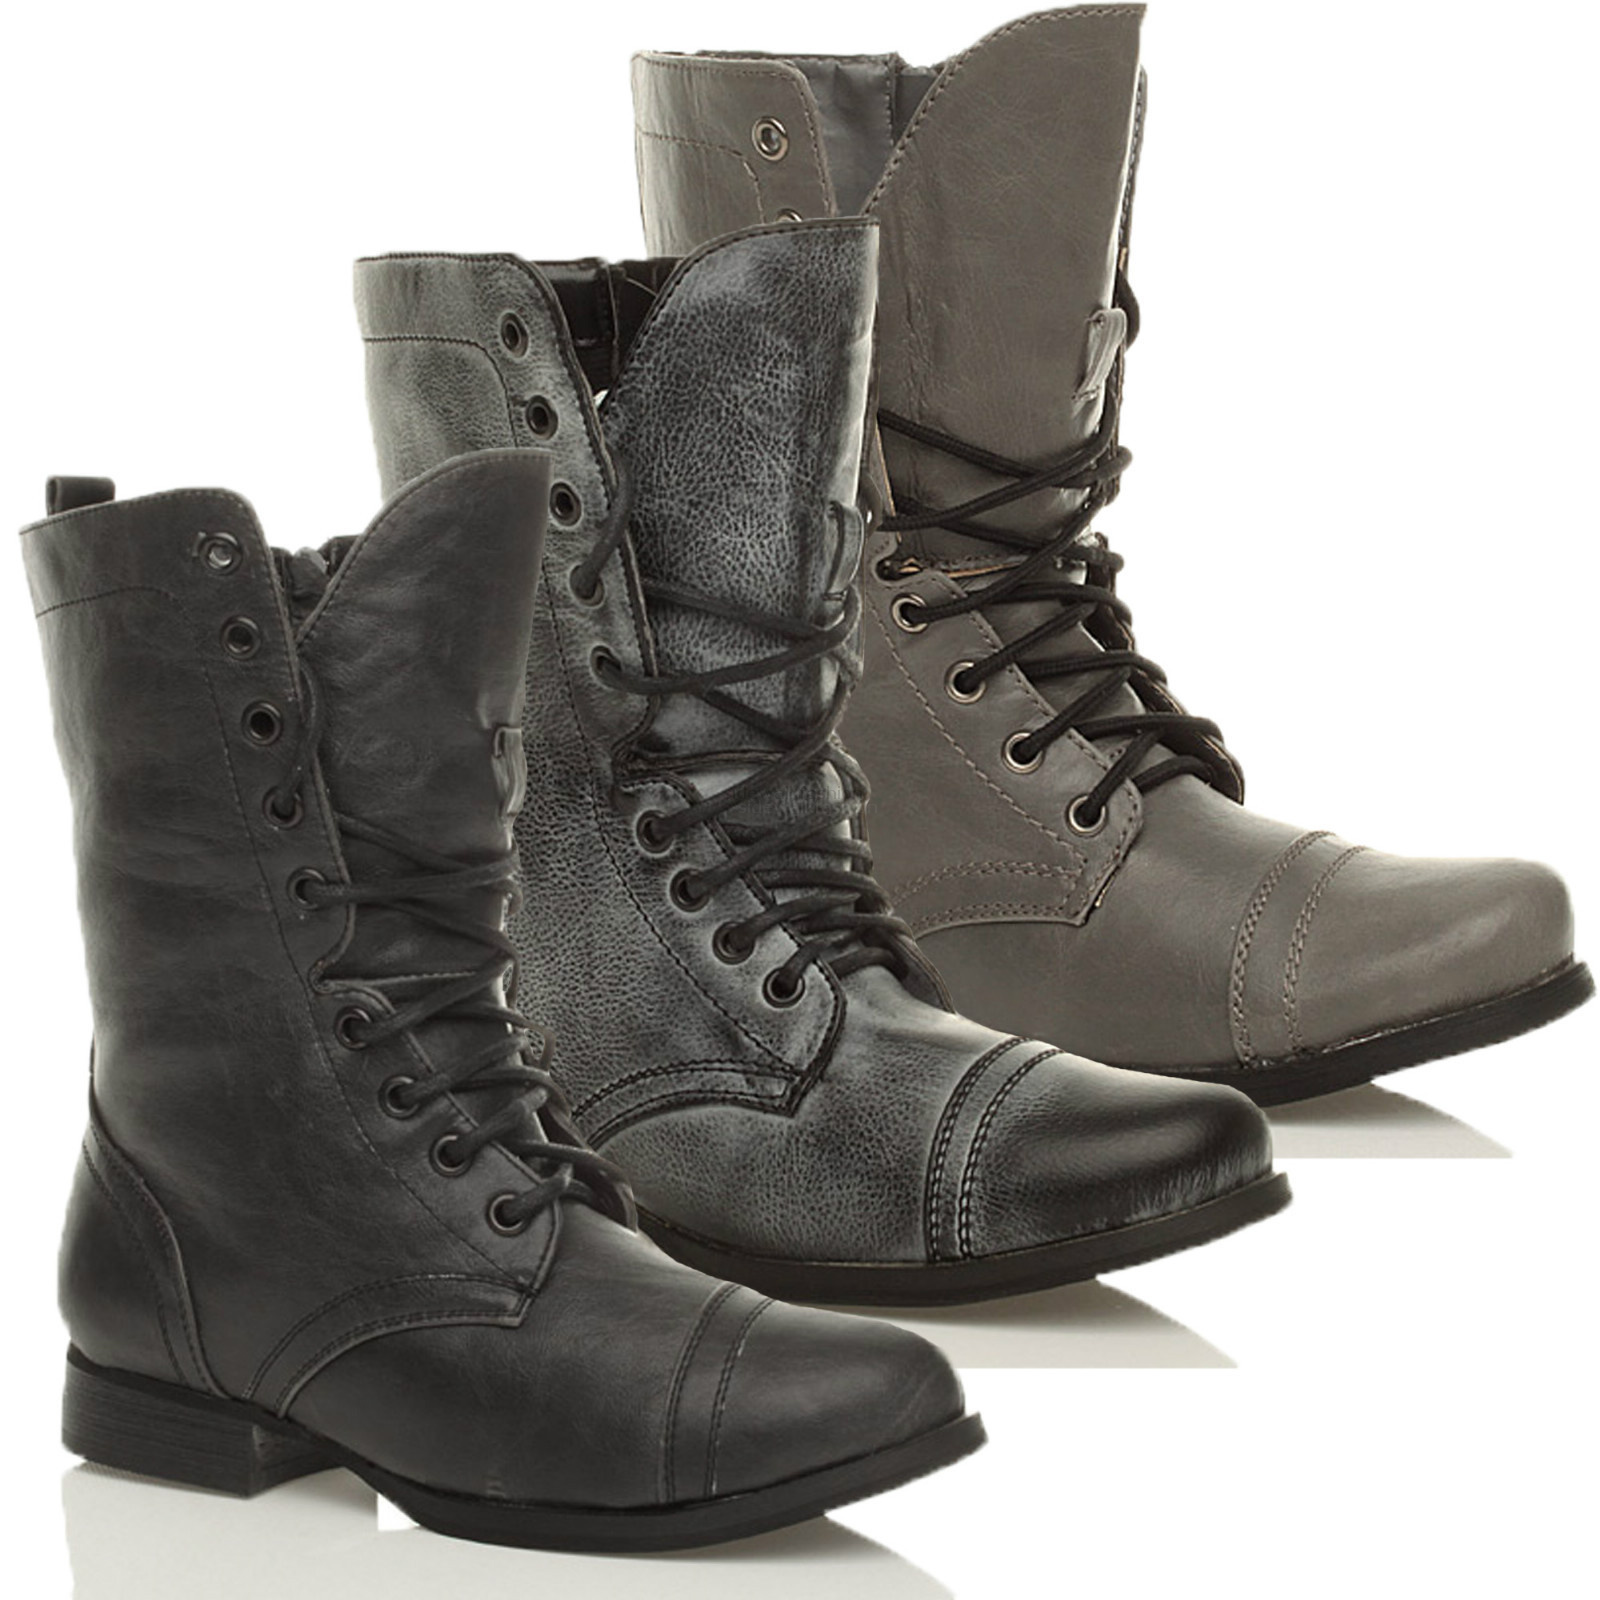 Model Womens Chic Combat Ankle Boots